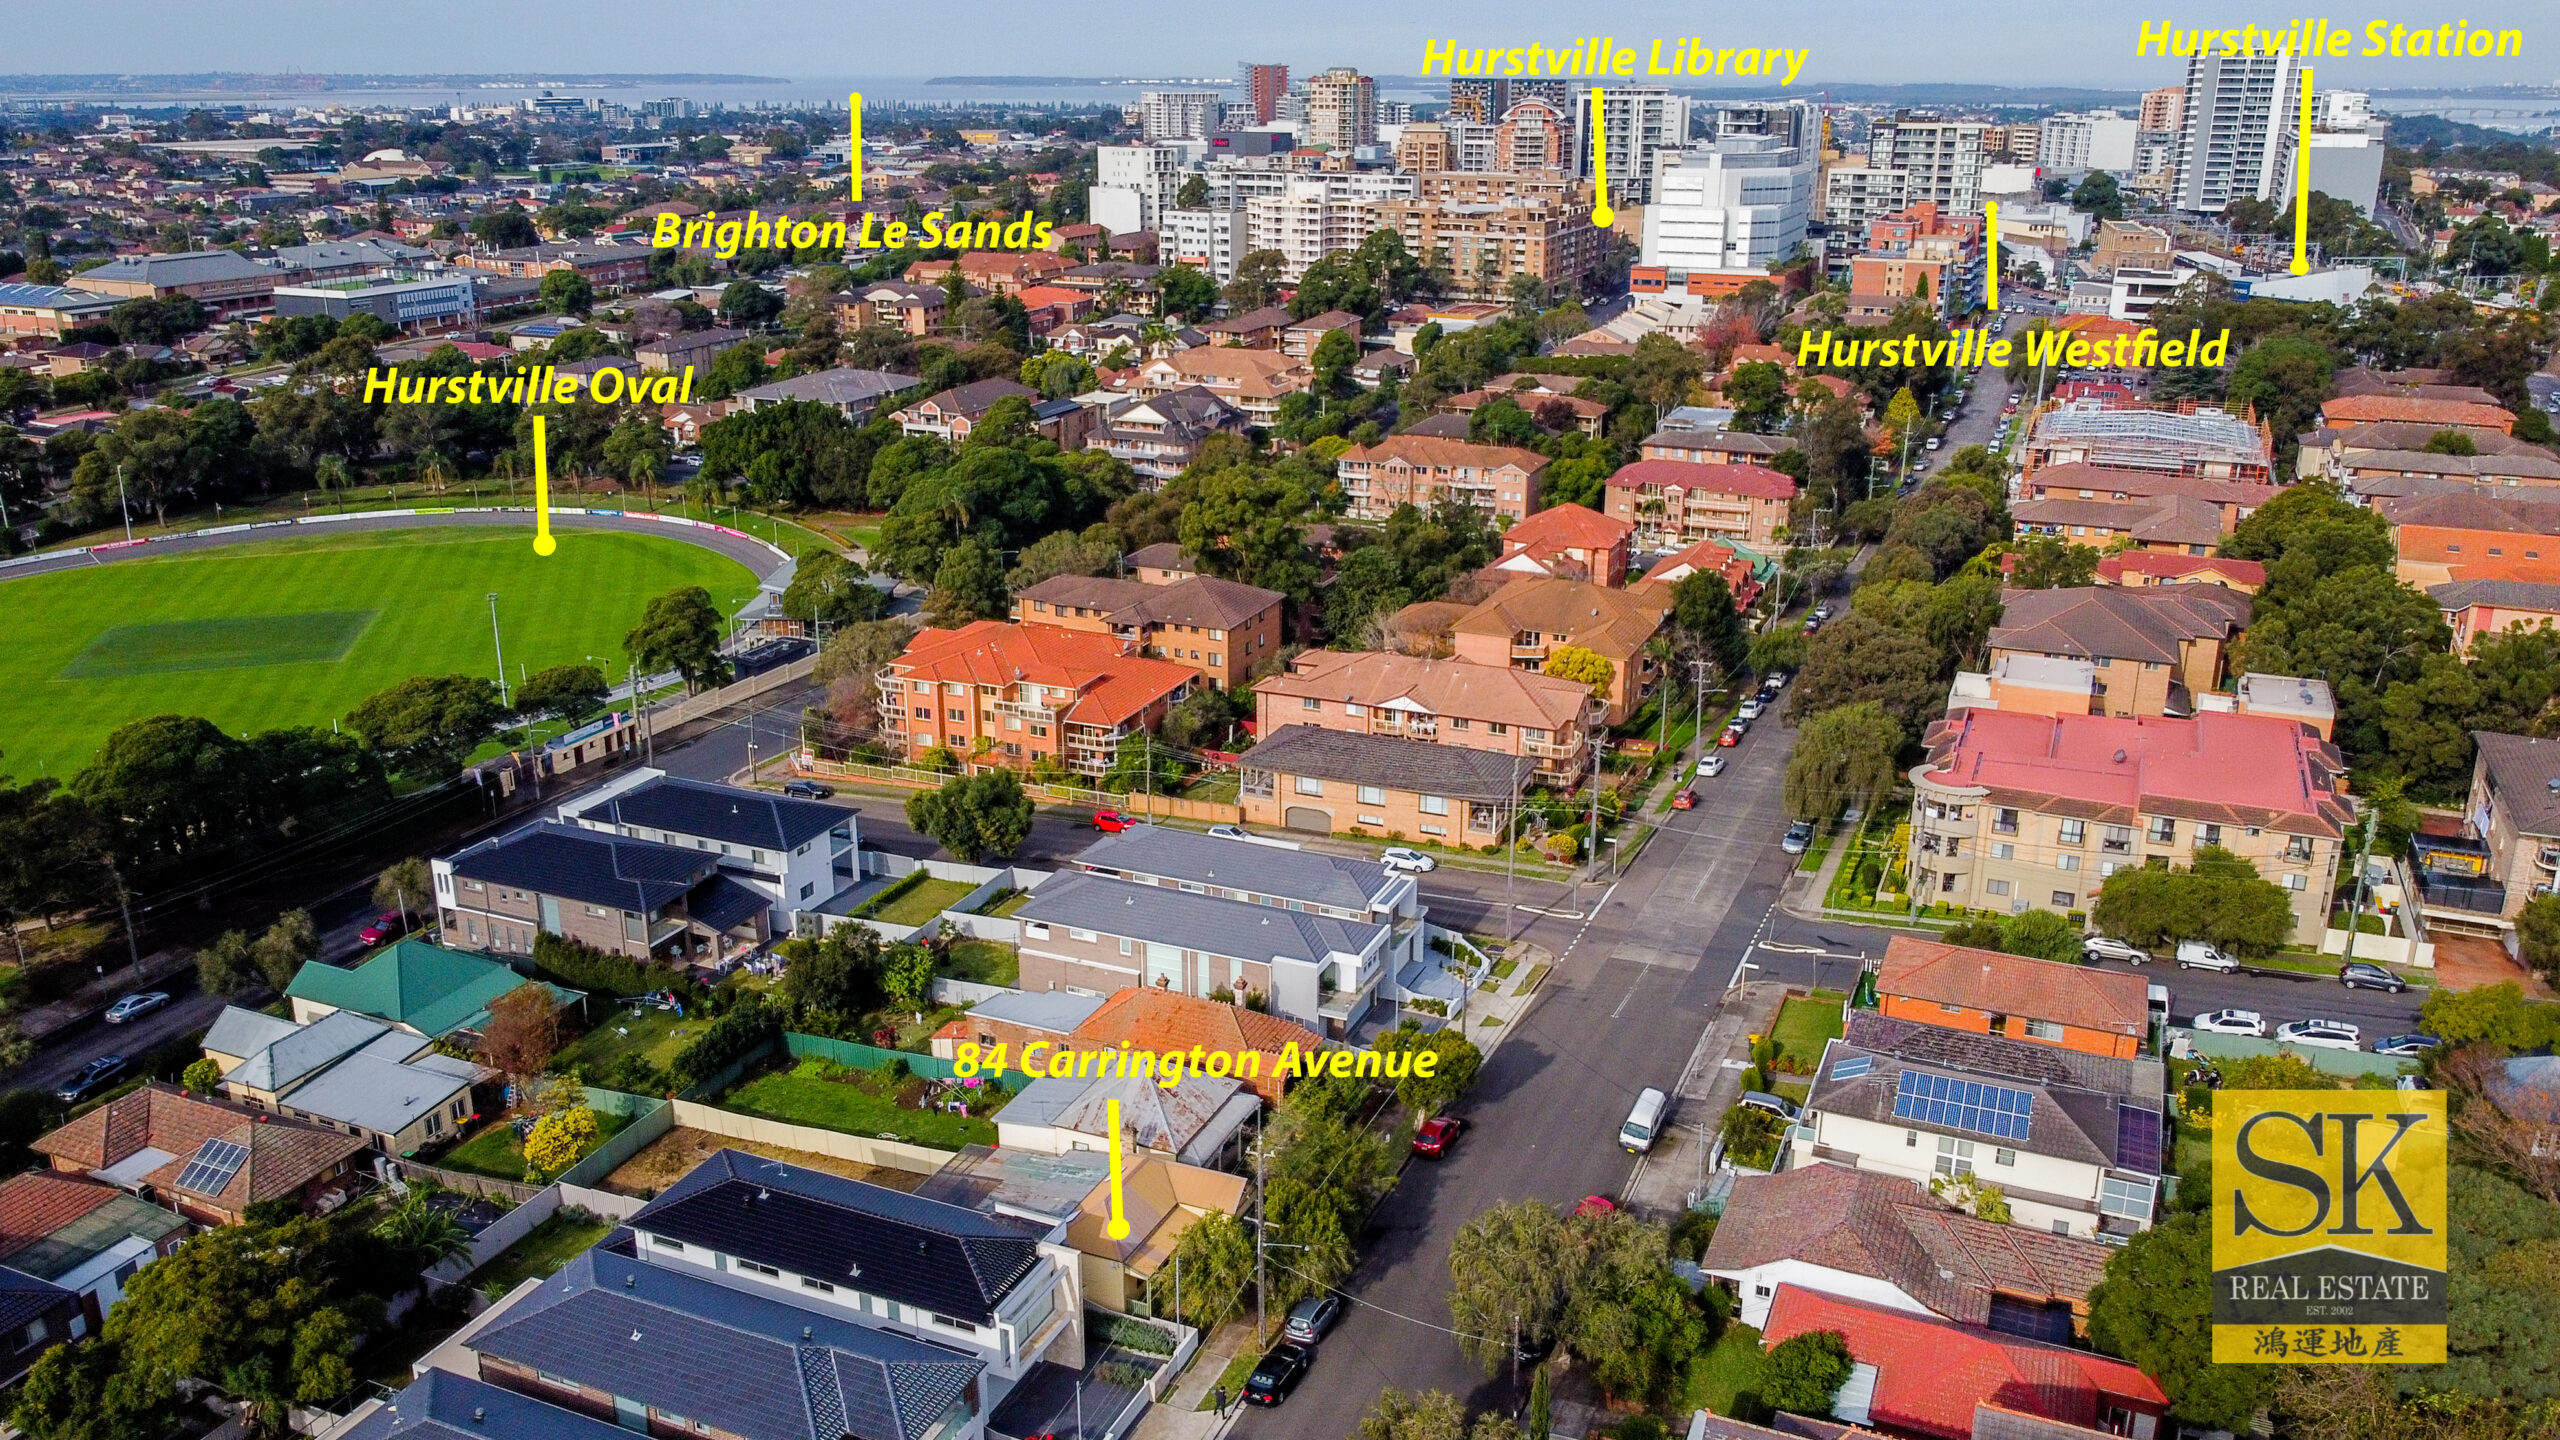 AUCTION | Must-see property potential for development in a prime location to Hurstville CBD